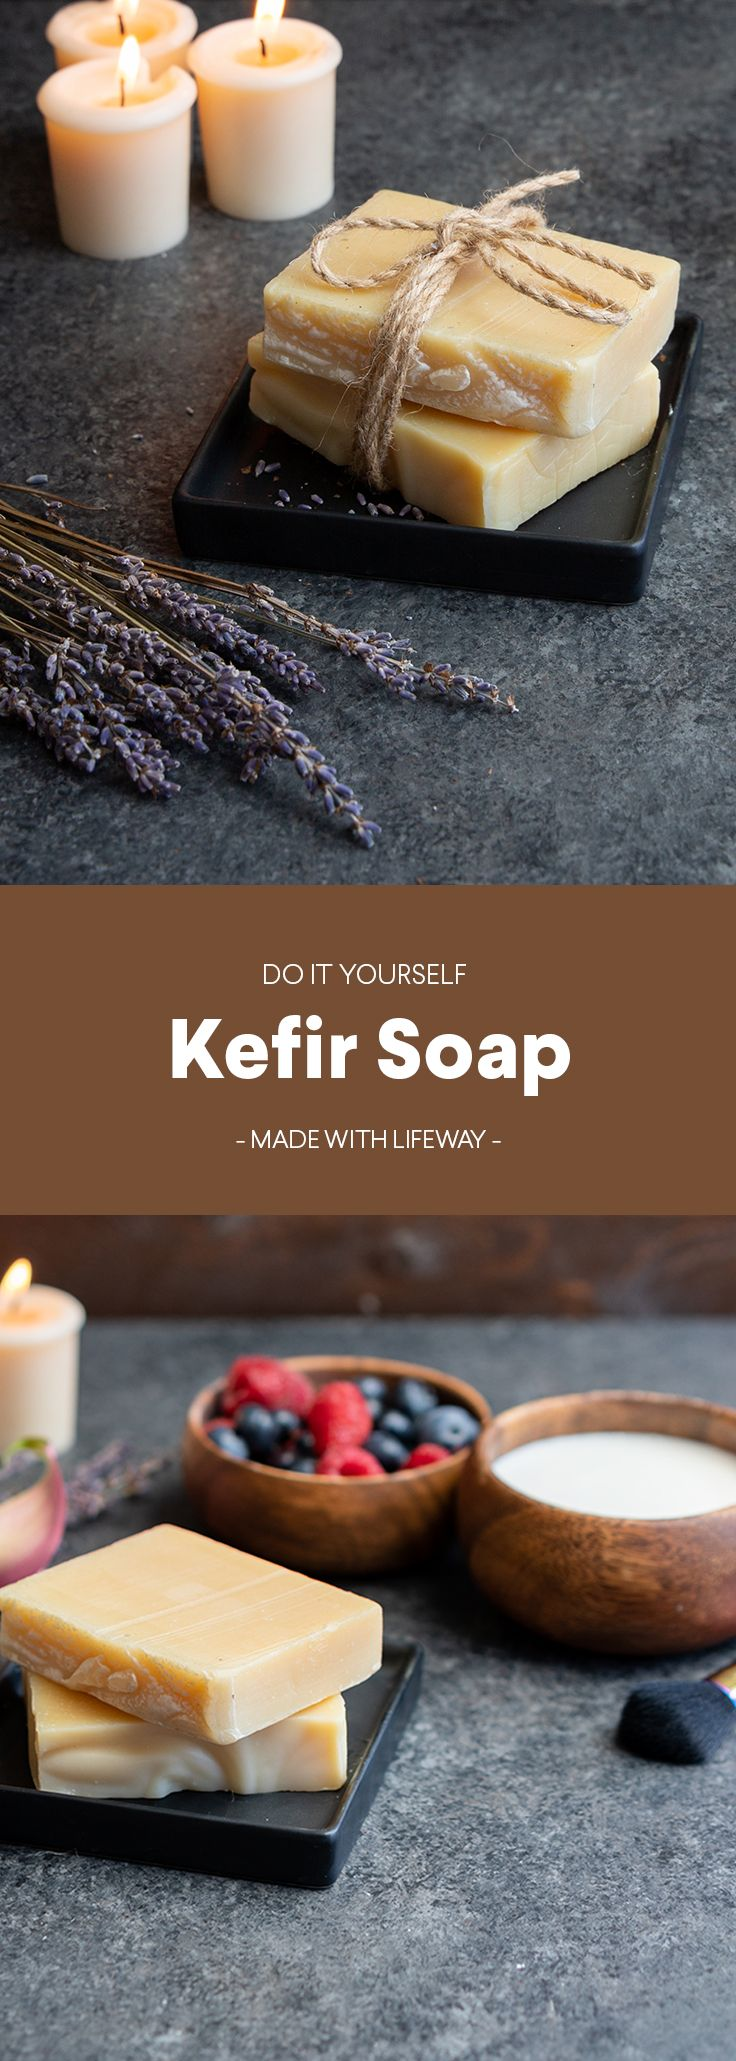 How To Make Kefir Soap Recipe Homemade Lotions Soaps Melts Lotion Etc Pinterest And